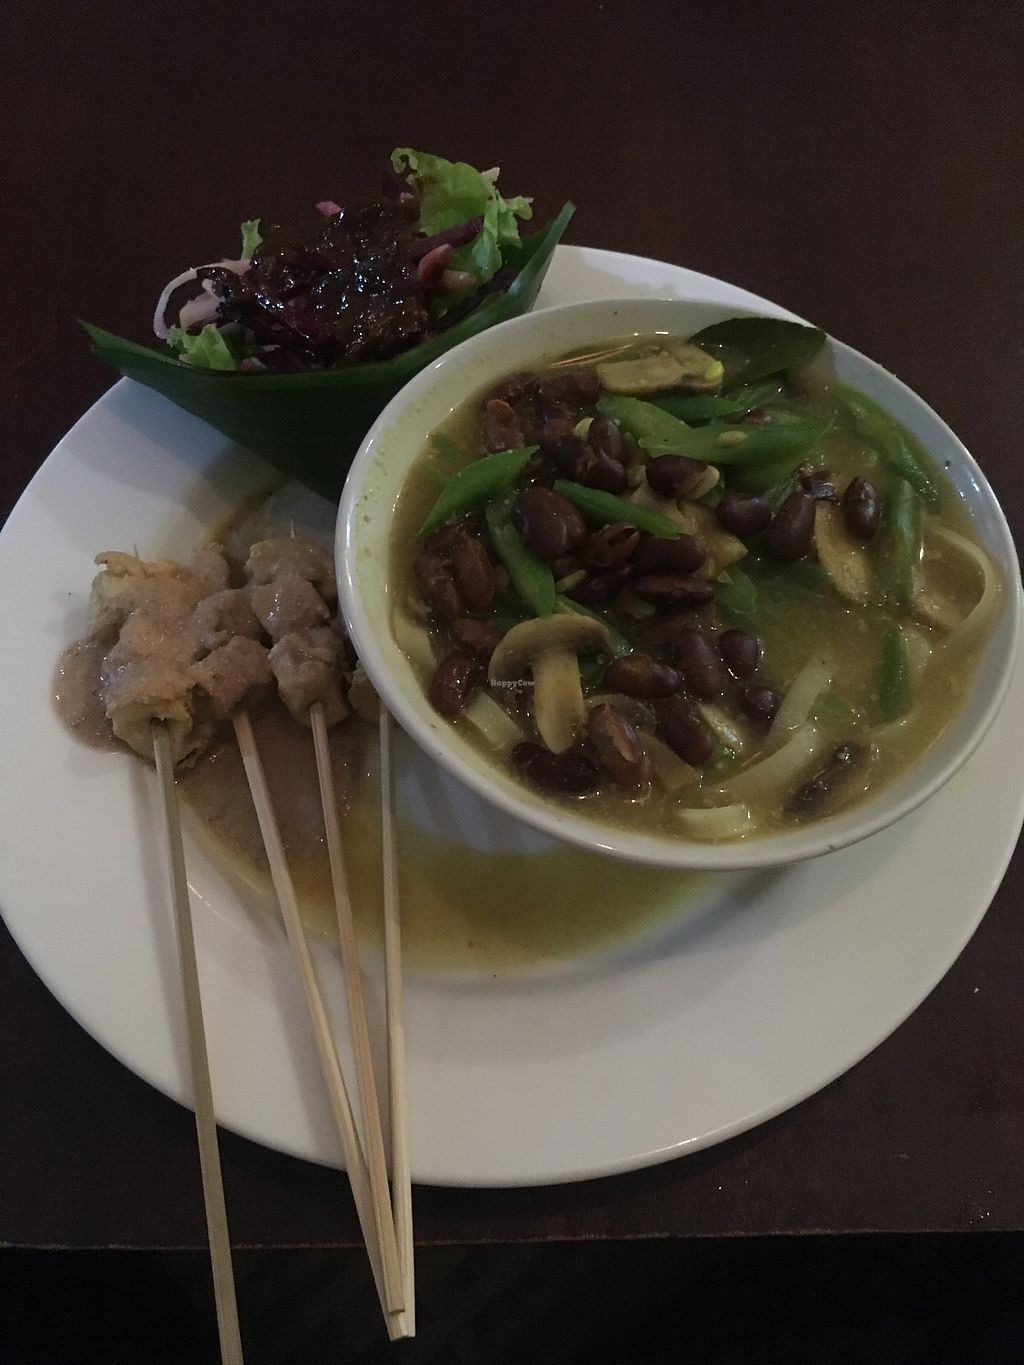 """Photo of Dayu's Warung  by <a href=""""/members/profile/samesamebutvegan"""">samesamebutvegan</a> <br/>Rice noodles with Thai curry <br/> July 7, 2017  - <a href='/contact/abuse/image/32883/277442'>Report</a>"""